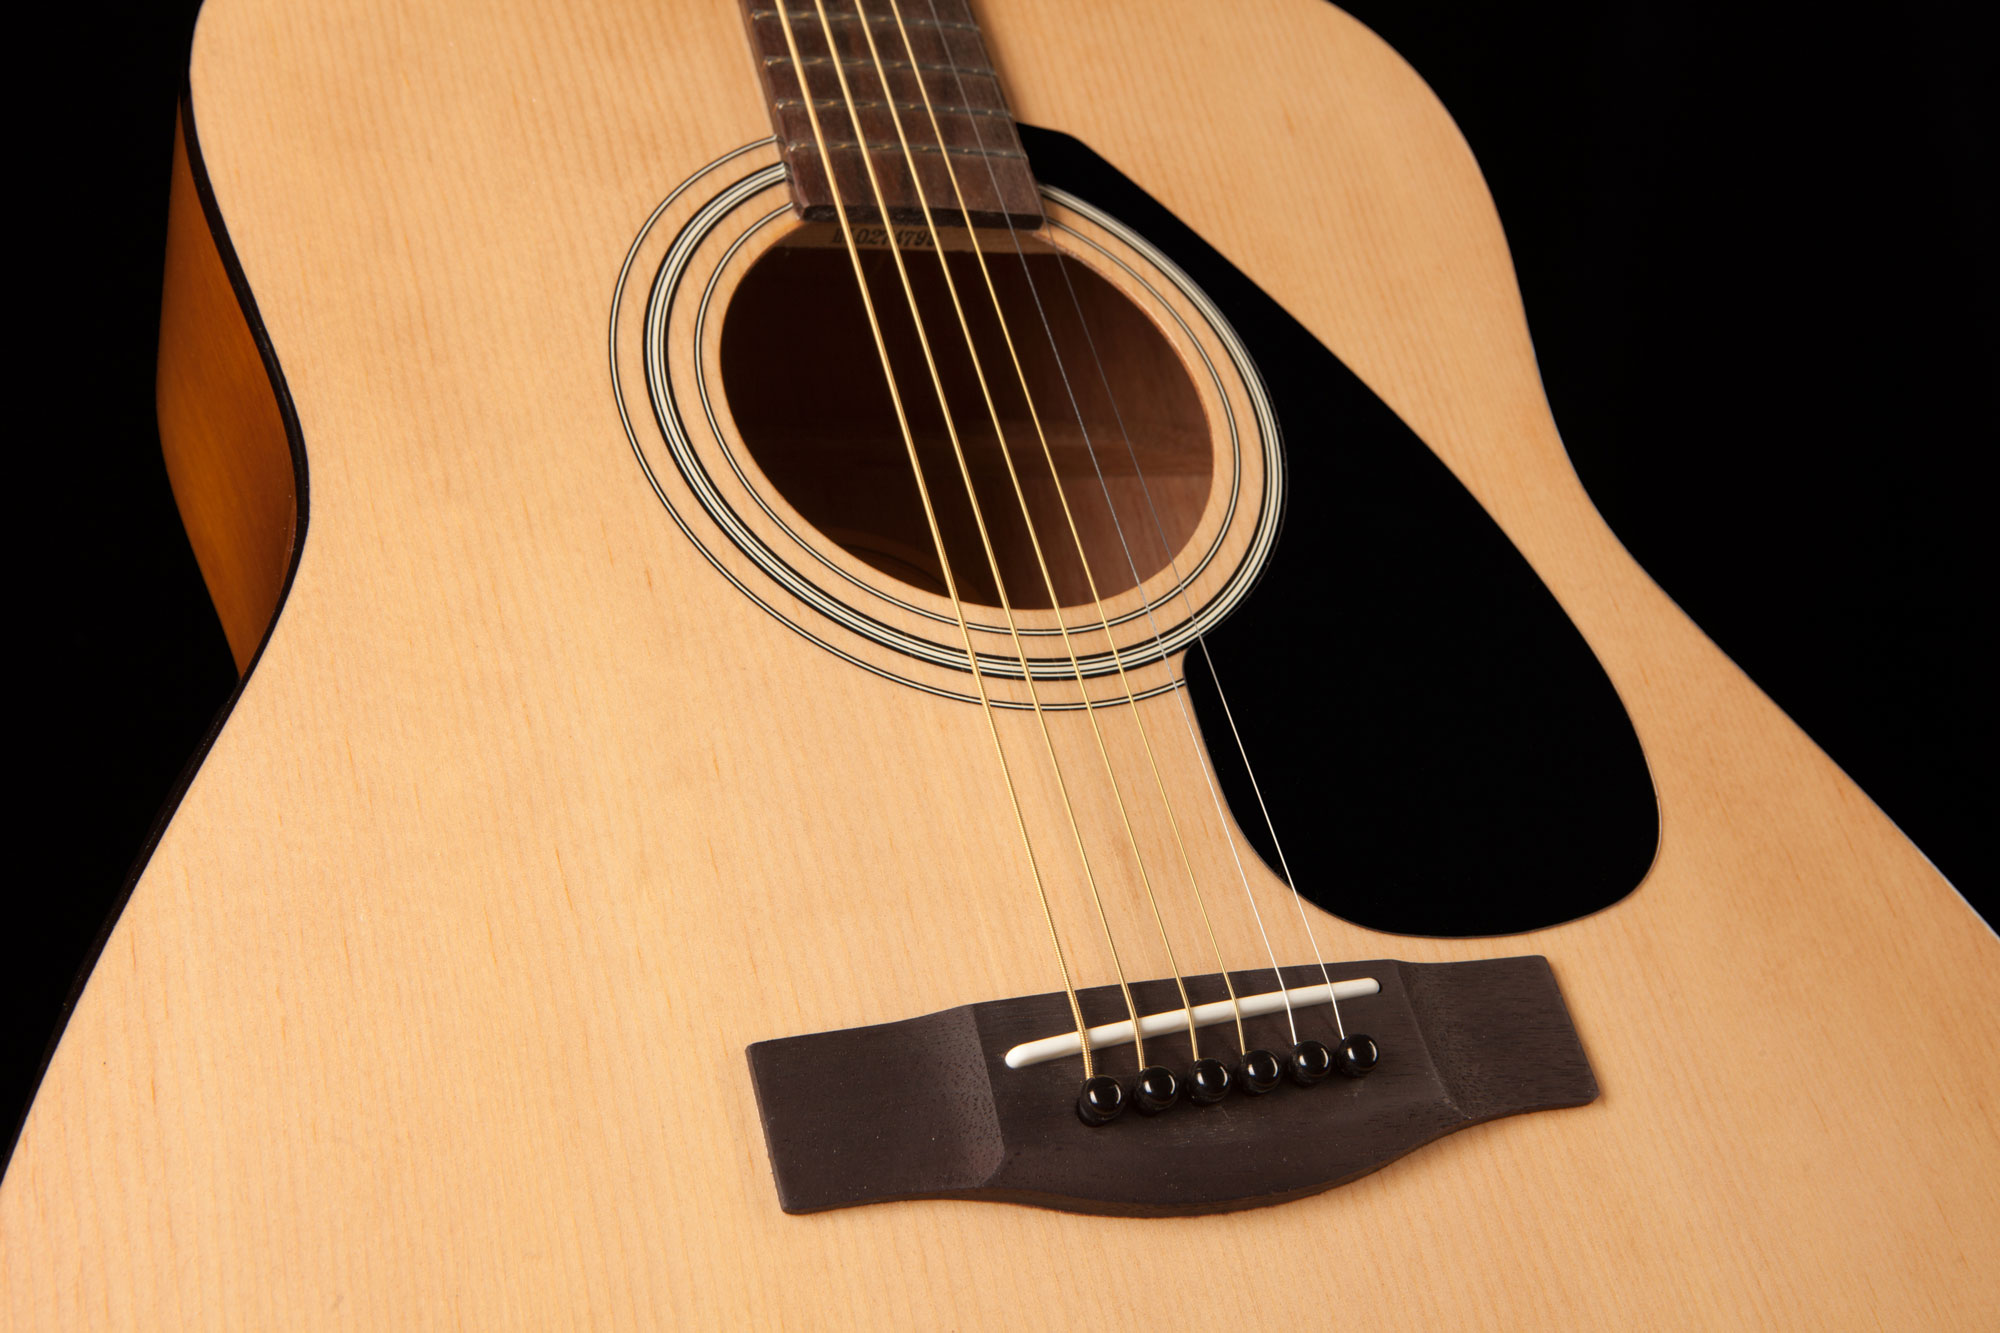 Yamaha F310 Acoustic Guitar In Natural or Tobacco Brown ...